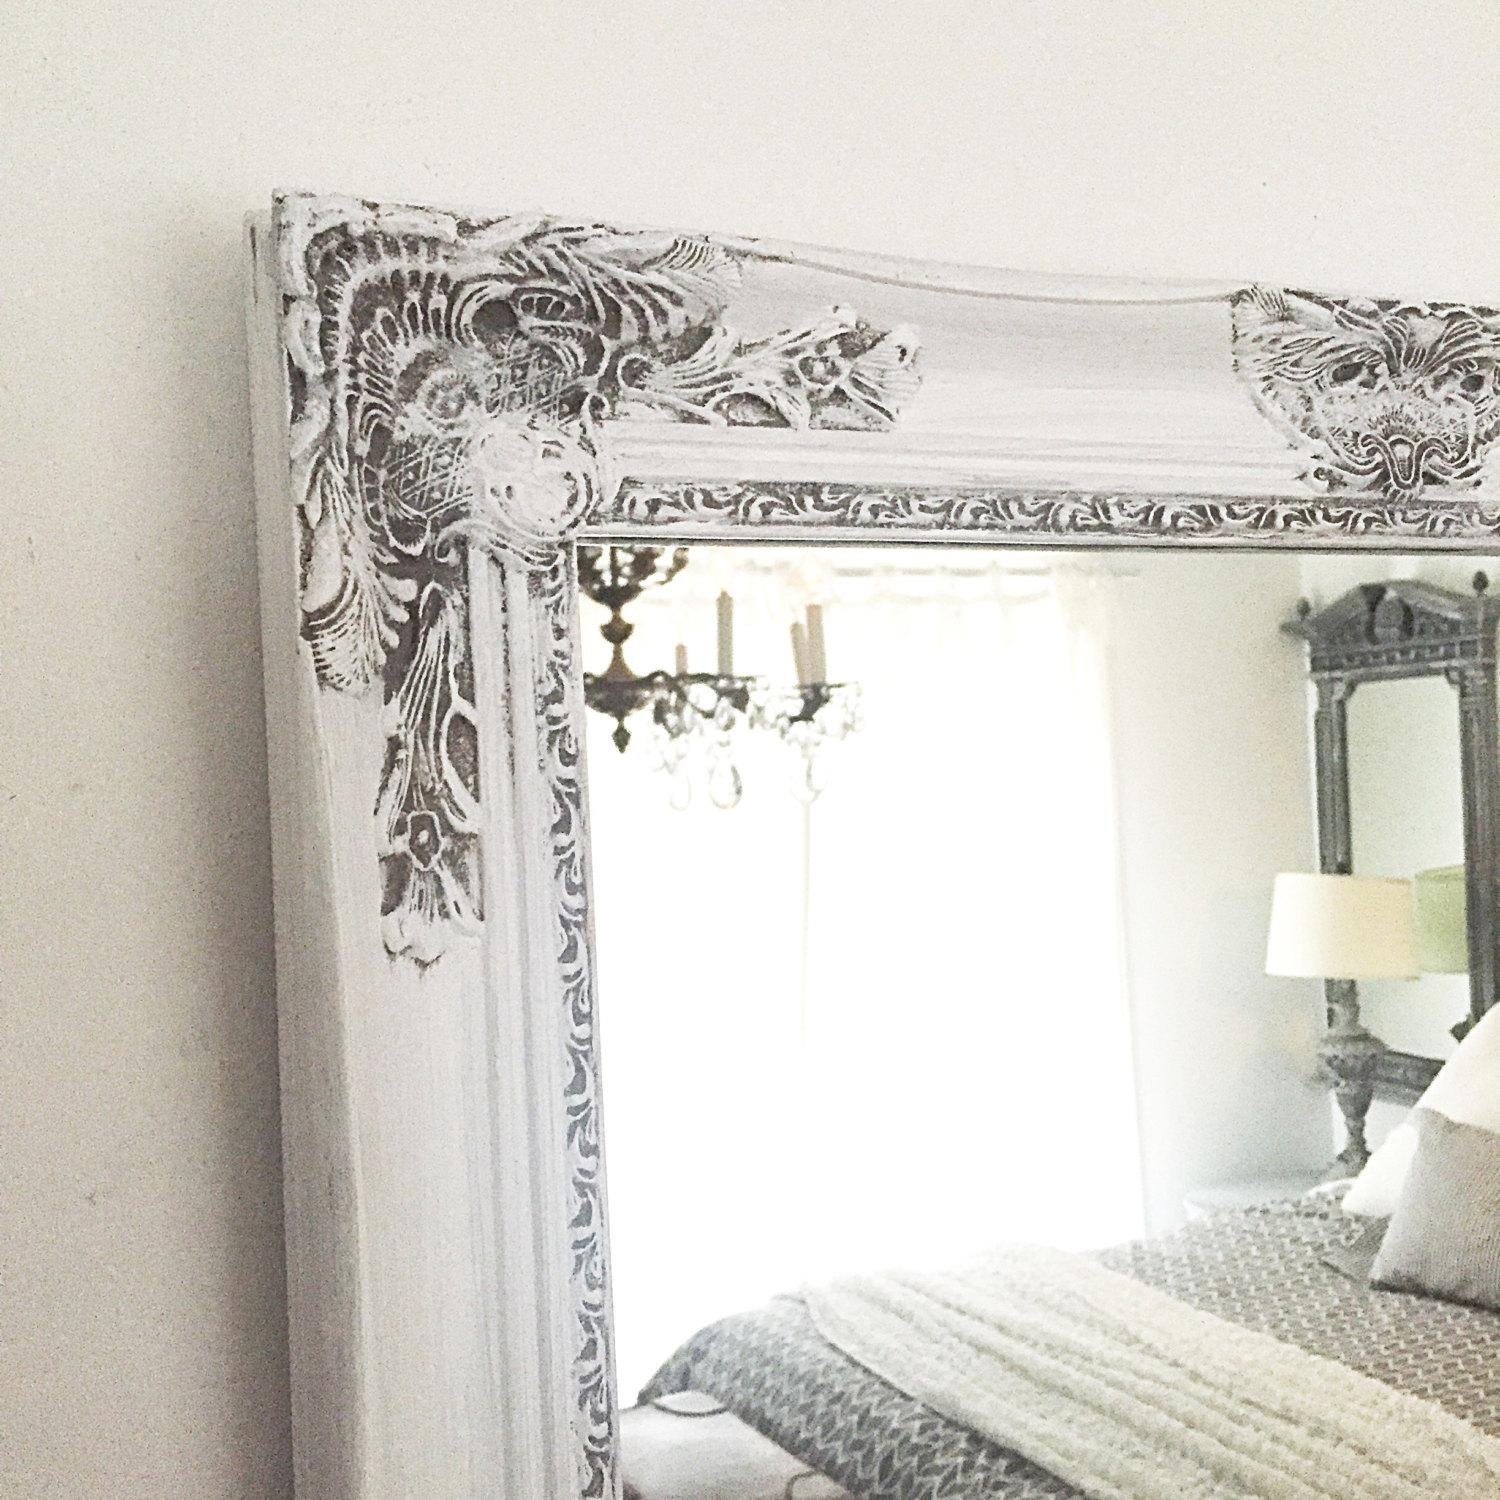 Navy Ornate Bathroom Mirrors | Home Inside Ornate Bathroom Mirror (View 3 of 20)